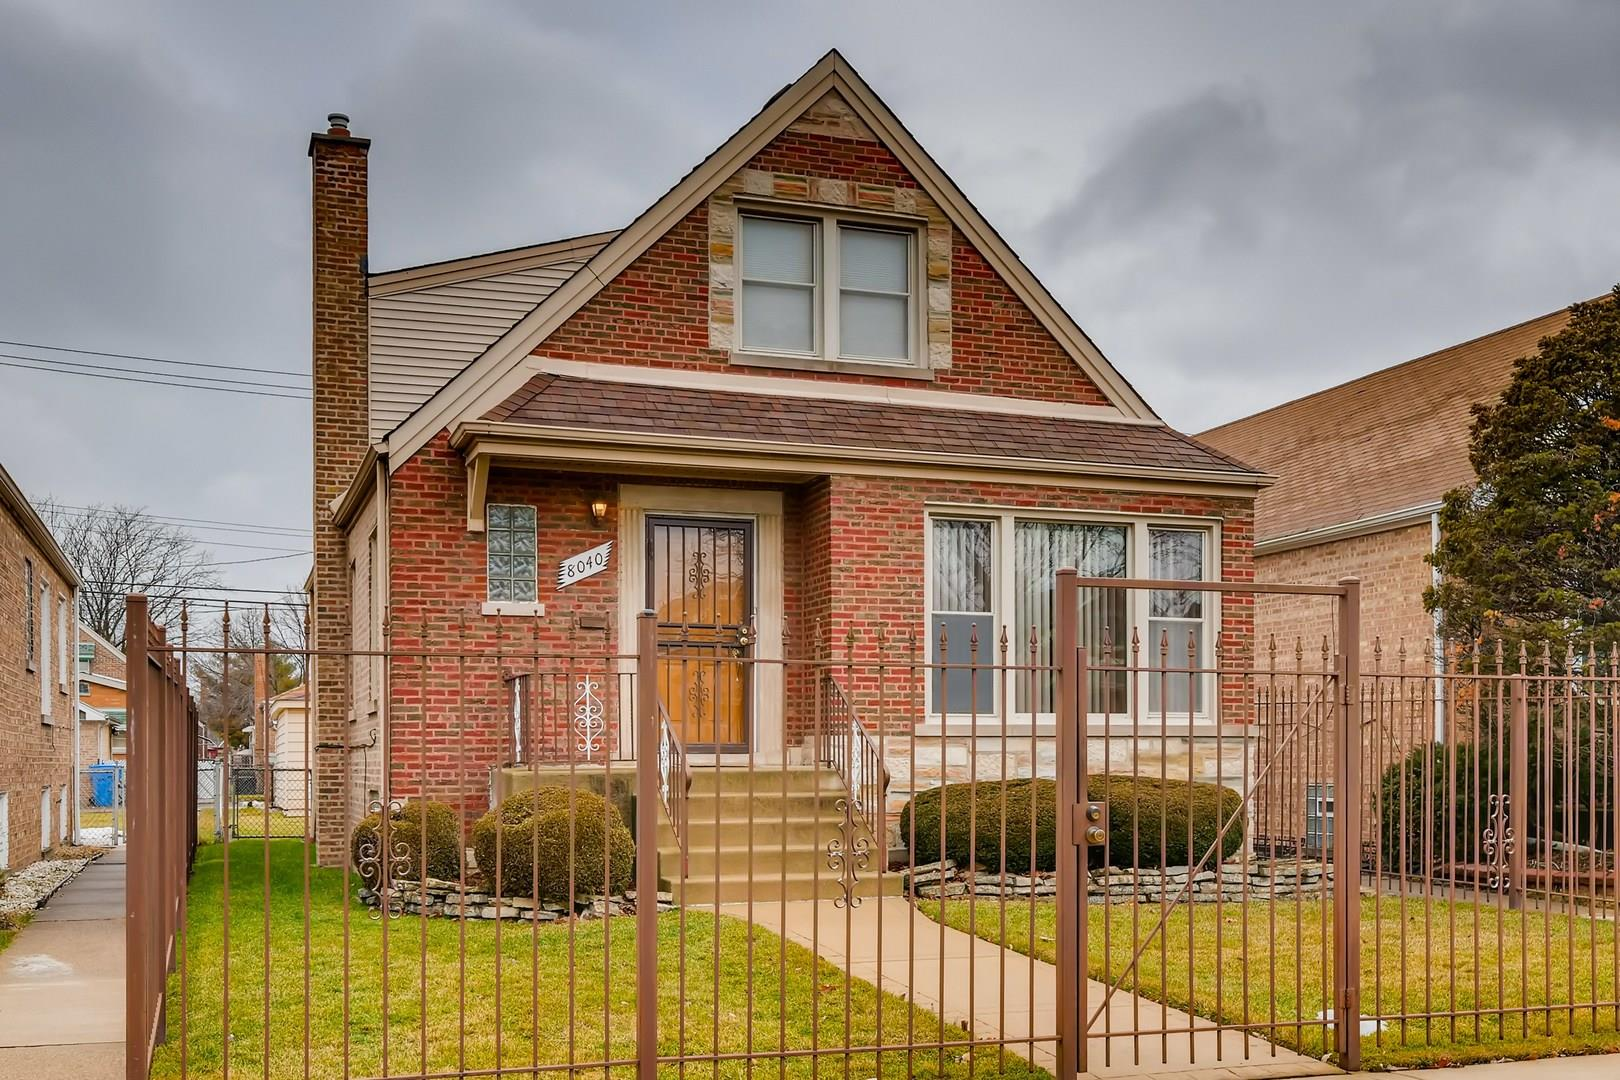 8040 S Sawyer Avenue, Chicago, IL 60652 - #: 10973176